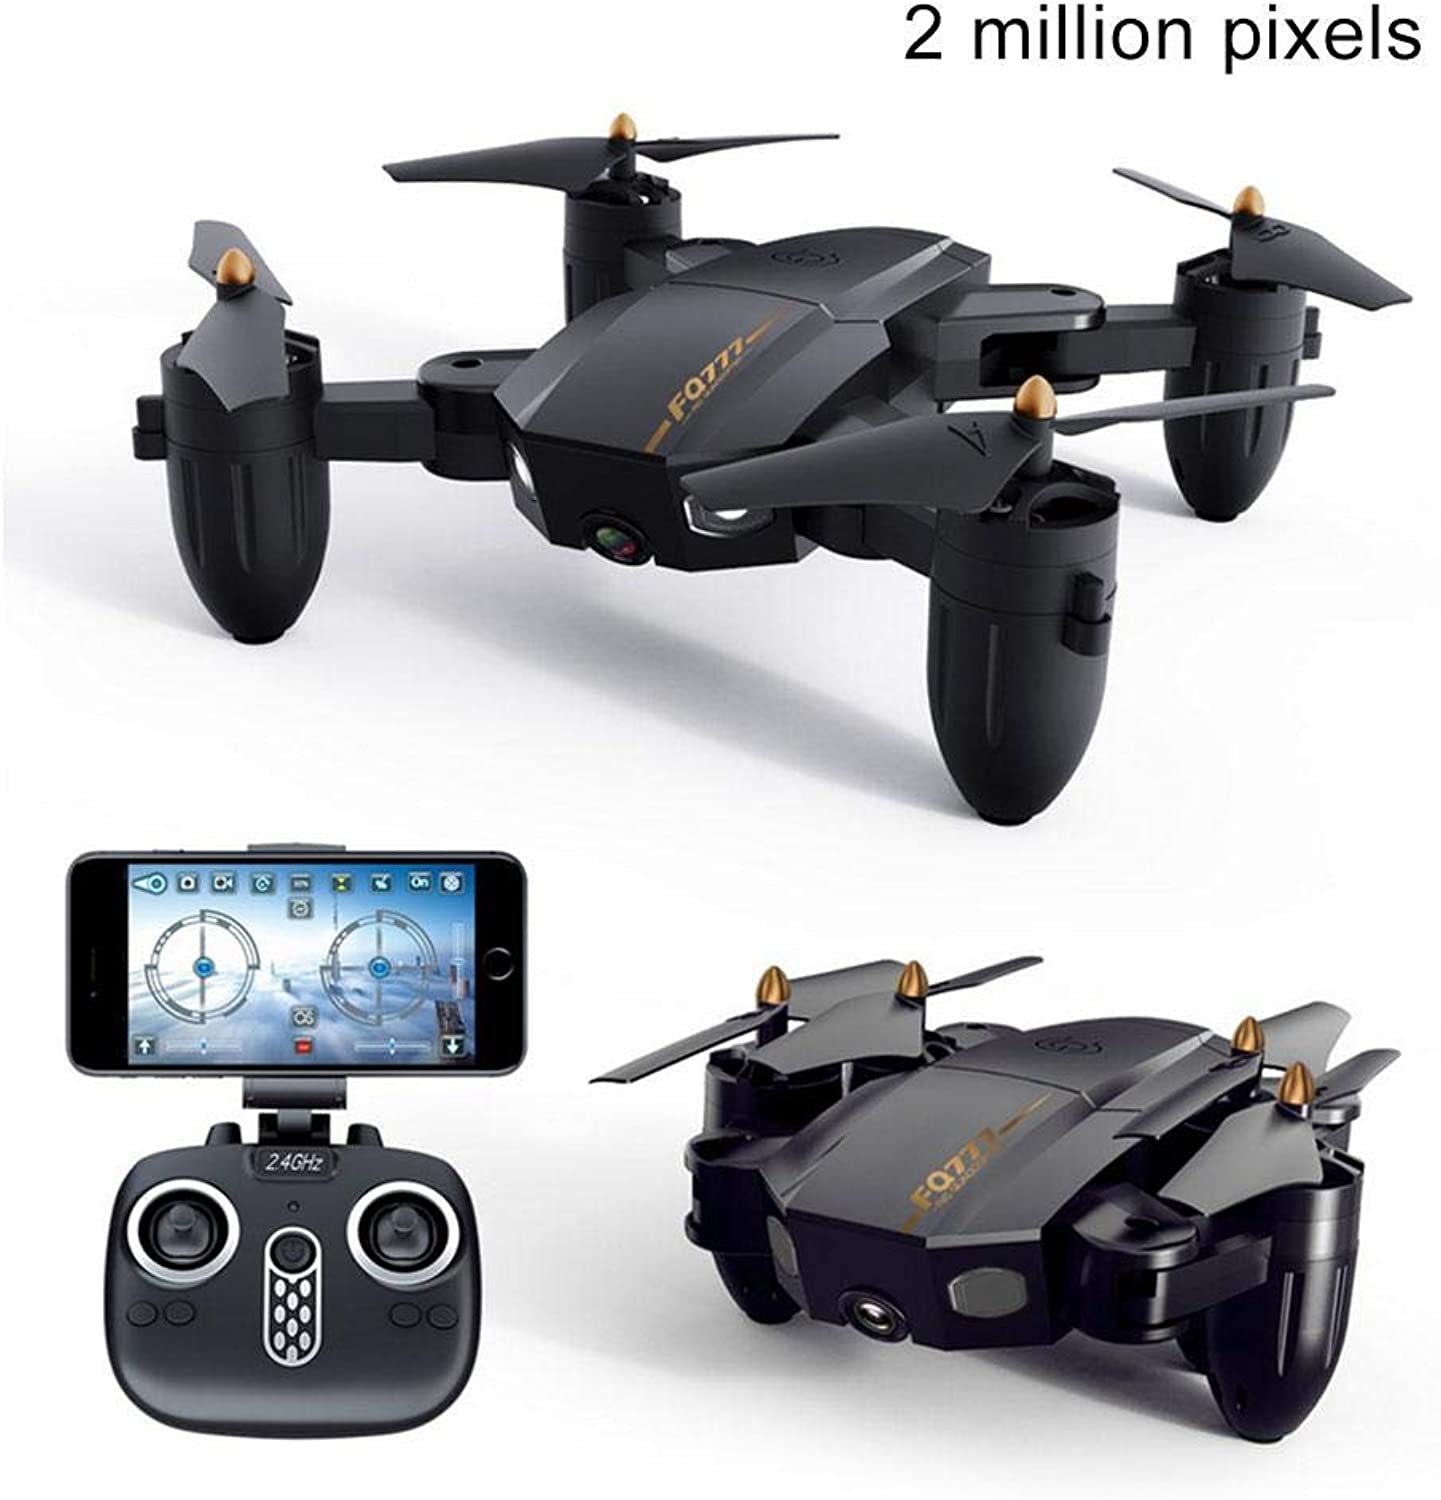 Teepao RC Quadcopter Drone kit, Foldable Drone Mini Pocket Drone with 2 Batteries,Easy to Use for Beginners,2.4G 6Axis Headless Mode,WiFi Real Time,One Key Return & 3D Flips Altitude Hold